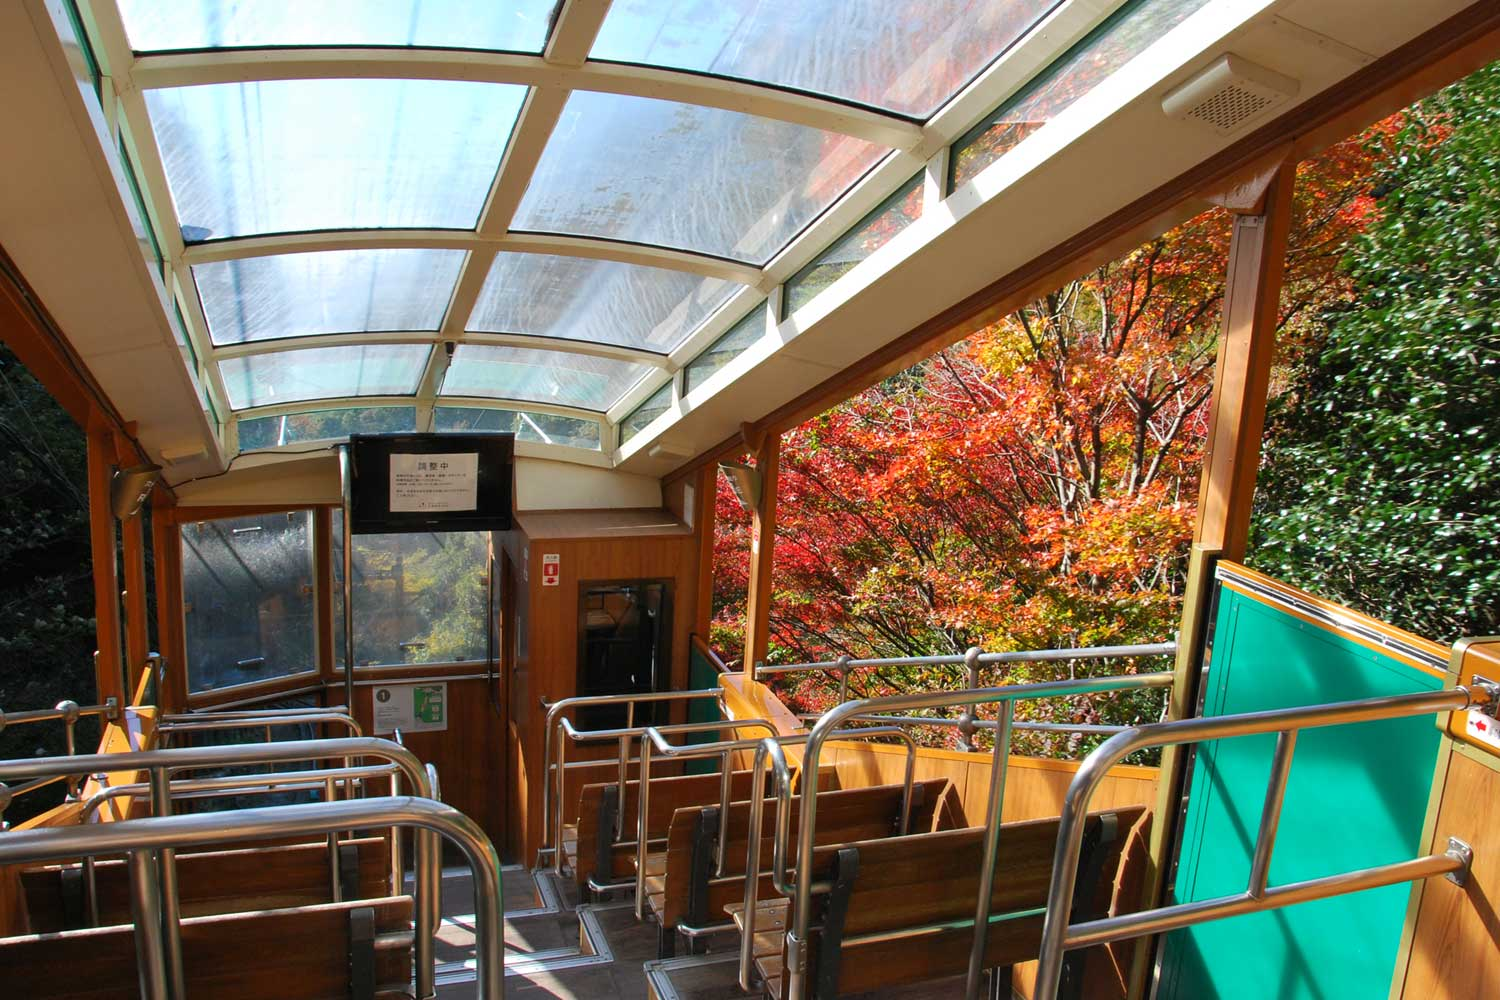 kobe-2014-mont-rokko-cable-car-interieur